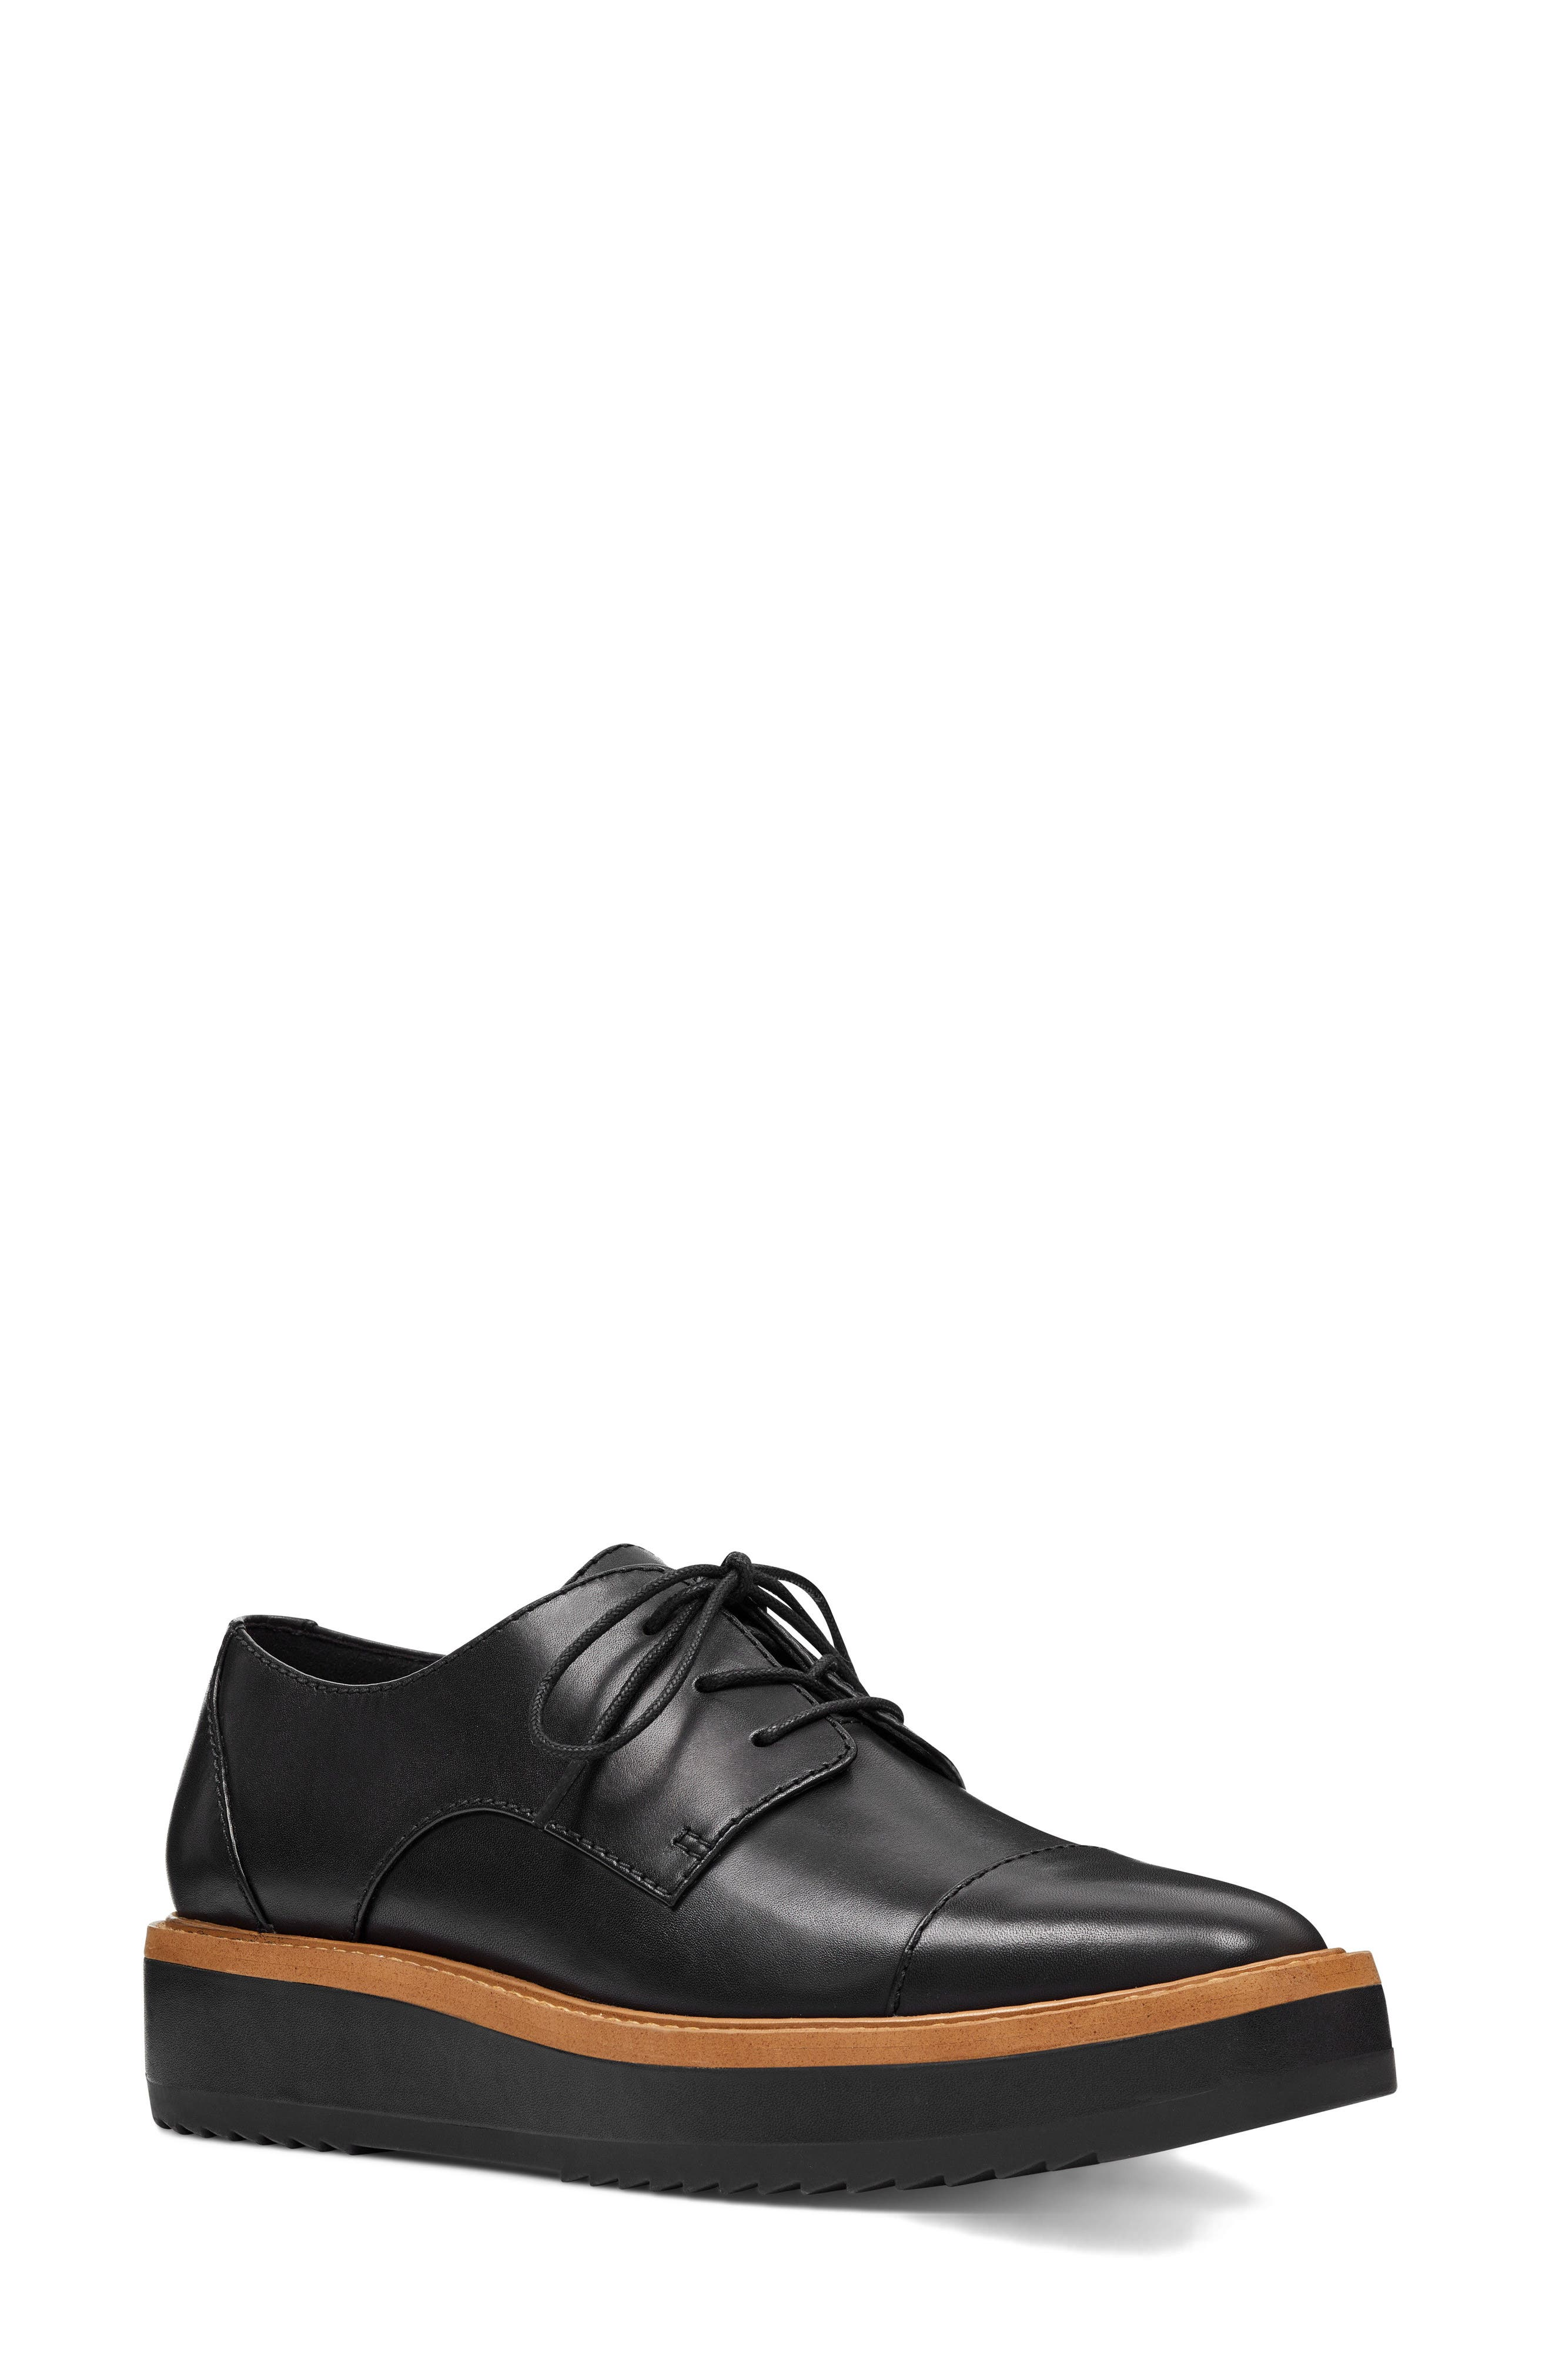 Vada Oxford,                             Main thumbnail 1, color,                             BLACK LEATHER